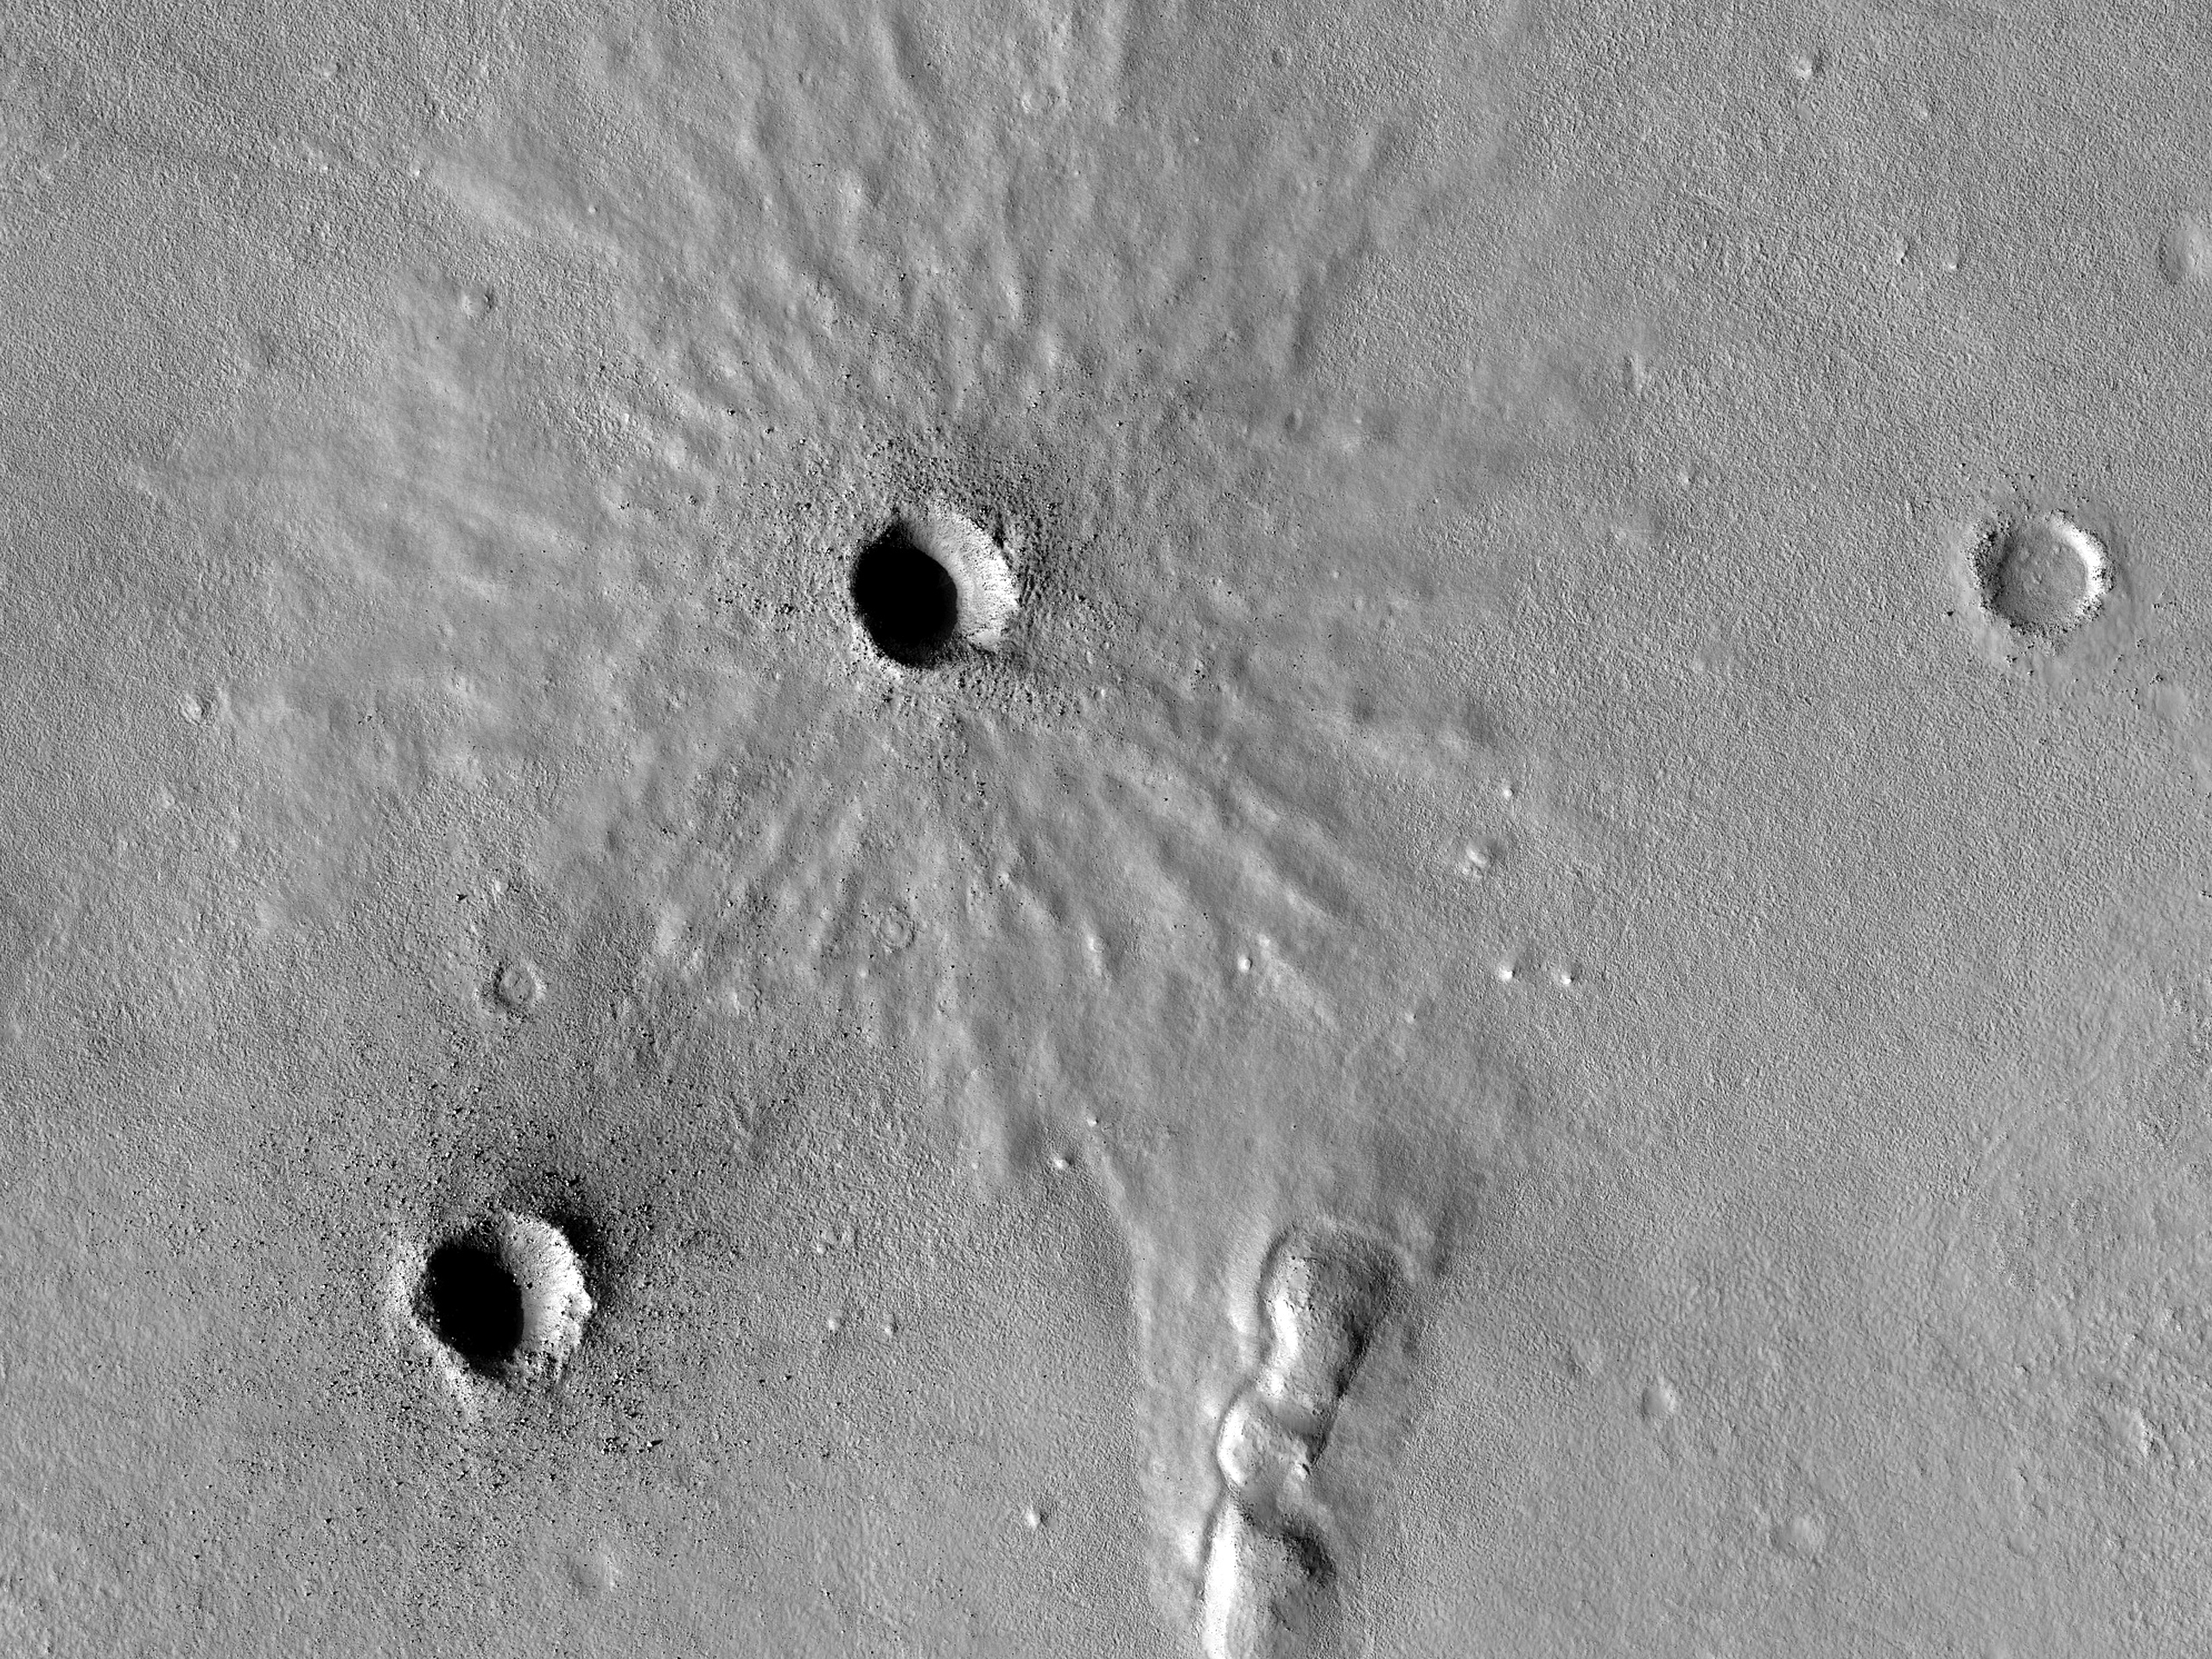 Fresh Craters in the Northern Mid-Latitudes